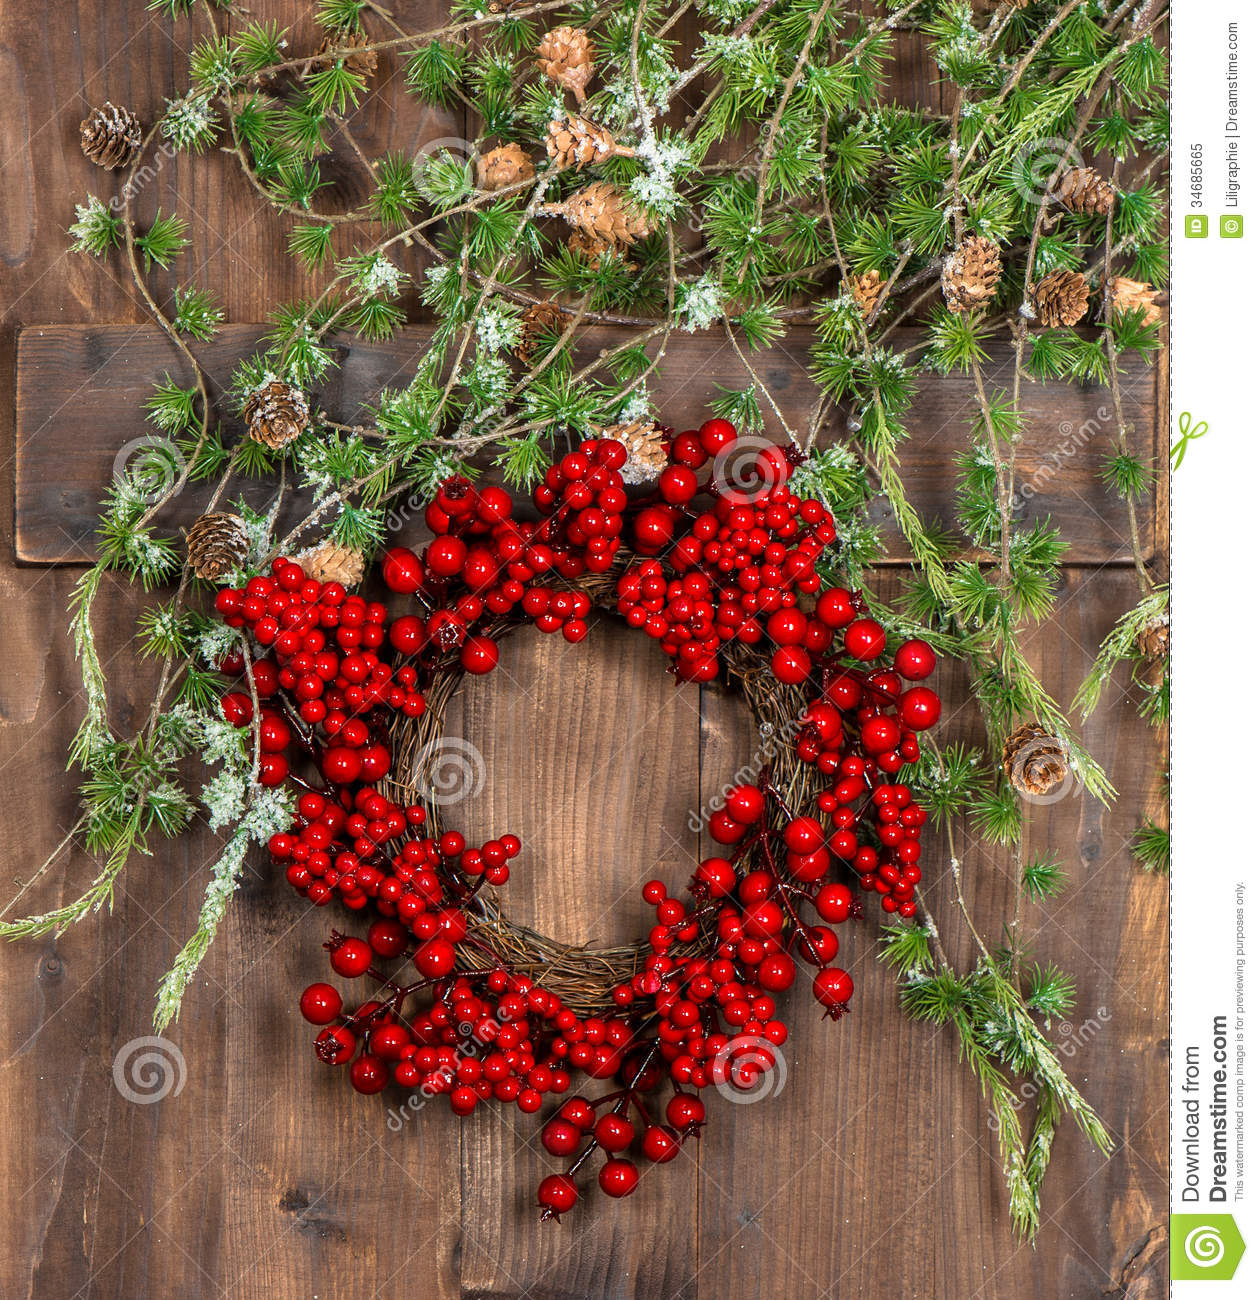 Green Christmas Tree Branches And Wreath From Red Berries Royalty ...